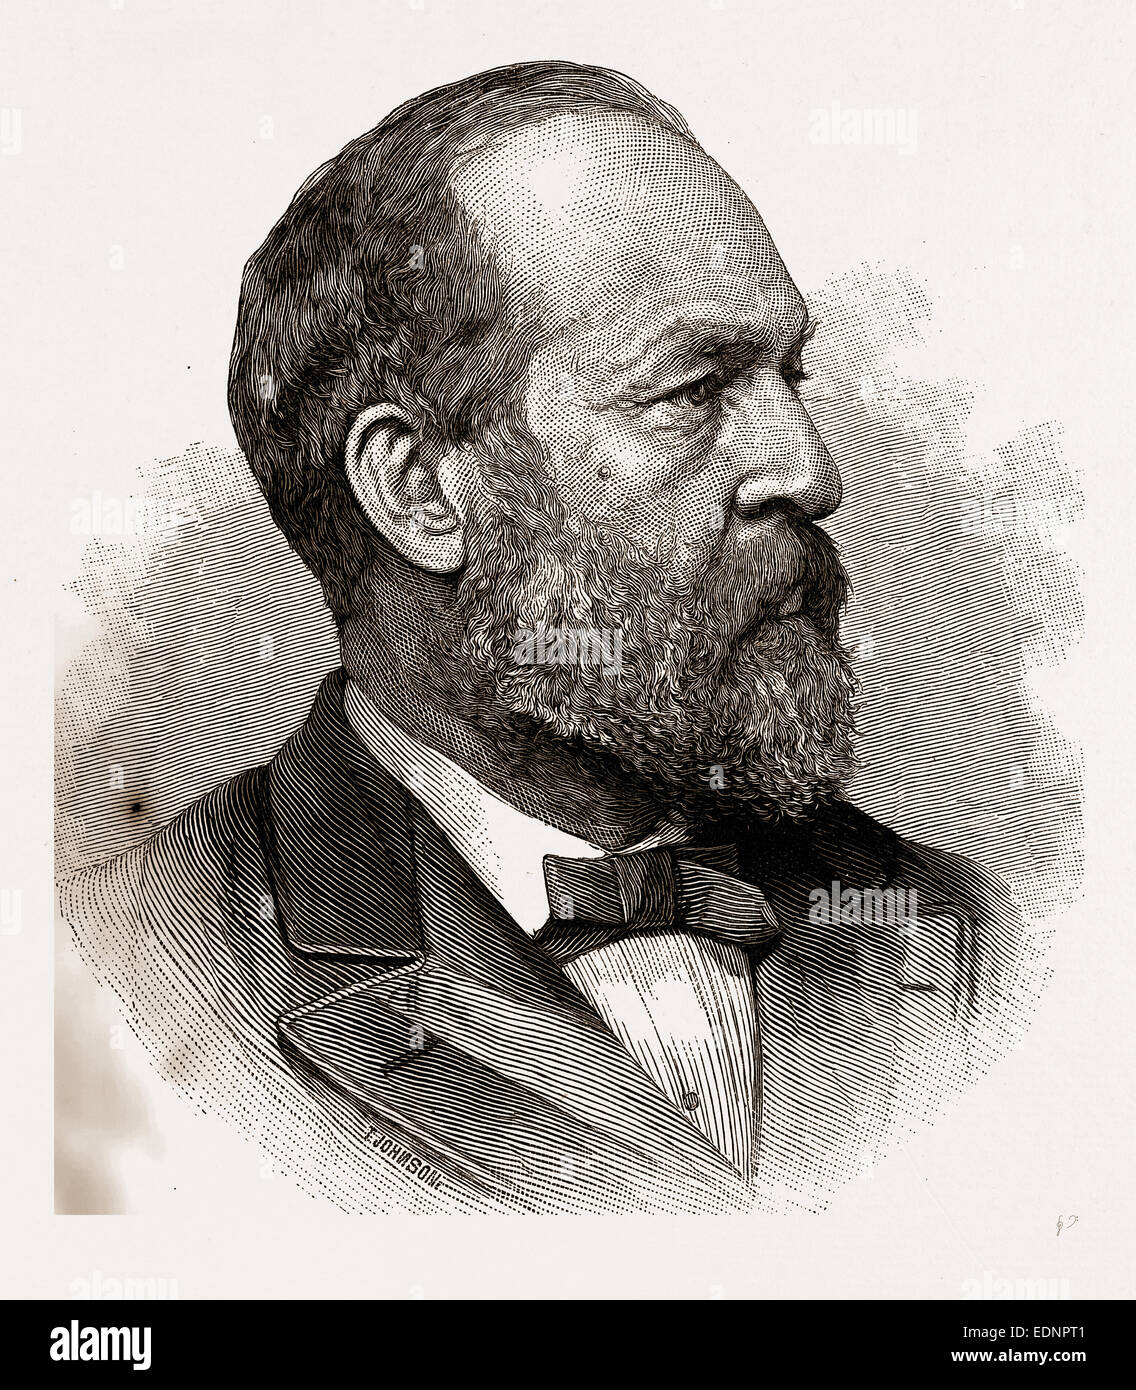 JAMES A. GARFIELD, PRESIDENT-ELECT OF THE UNITED STATES, 1880, 19th century engraving, USA, America - Stock Image